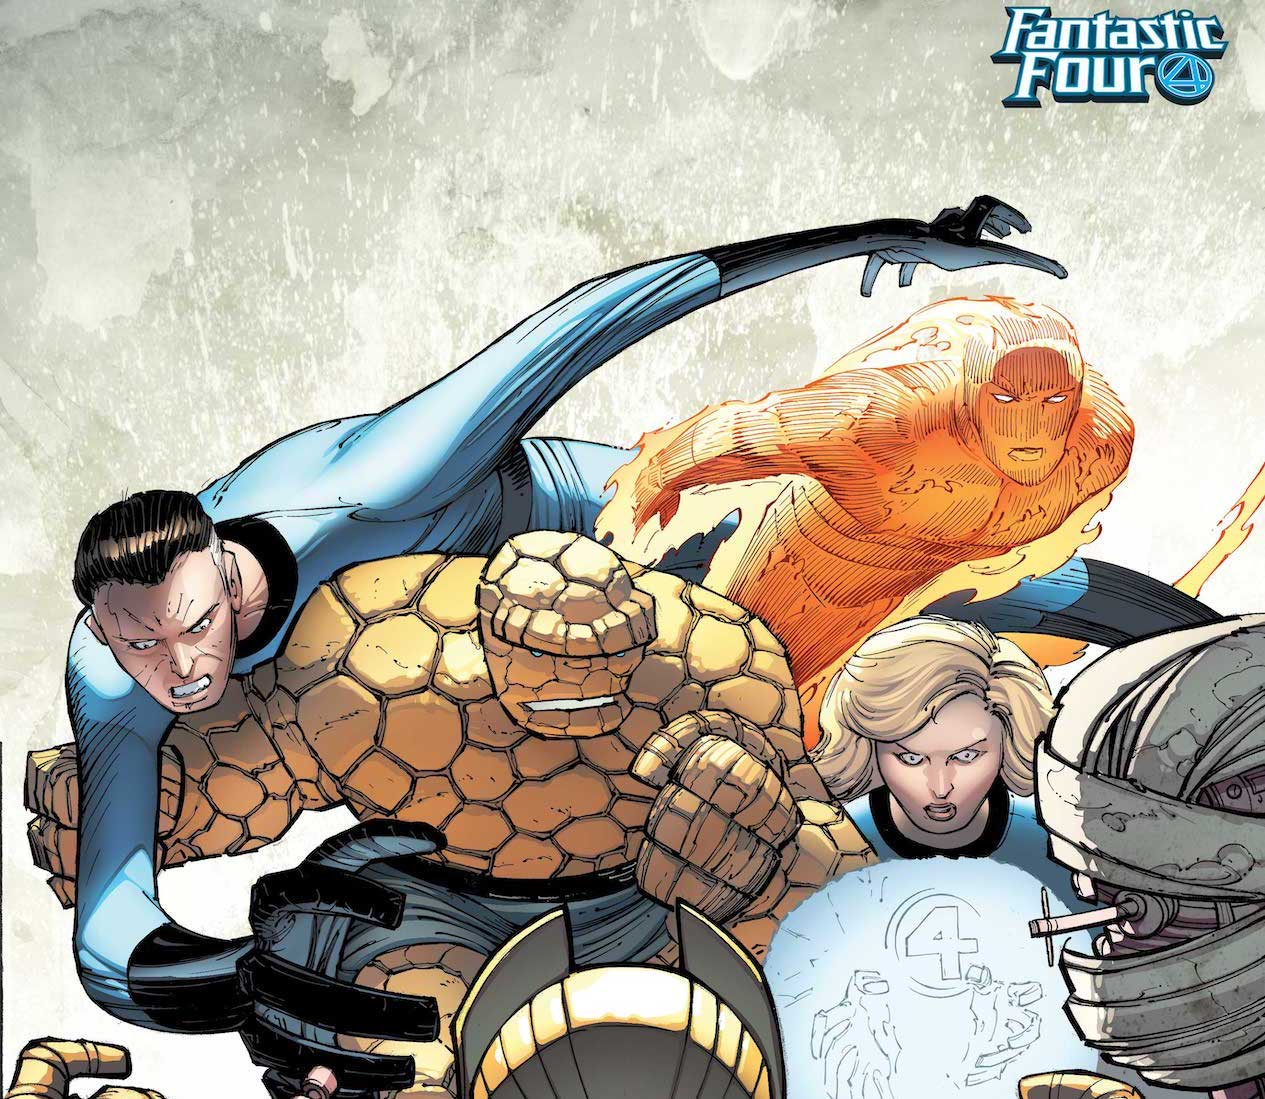 Marvel First Look: Fantastic Four #35, the giant-sized 60th anniversary issue